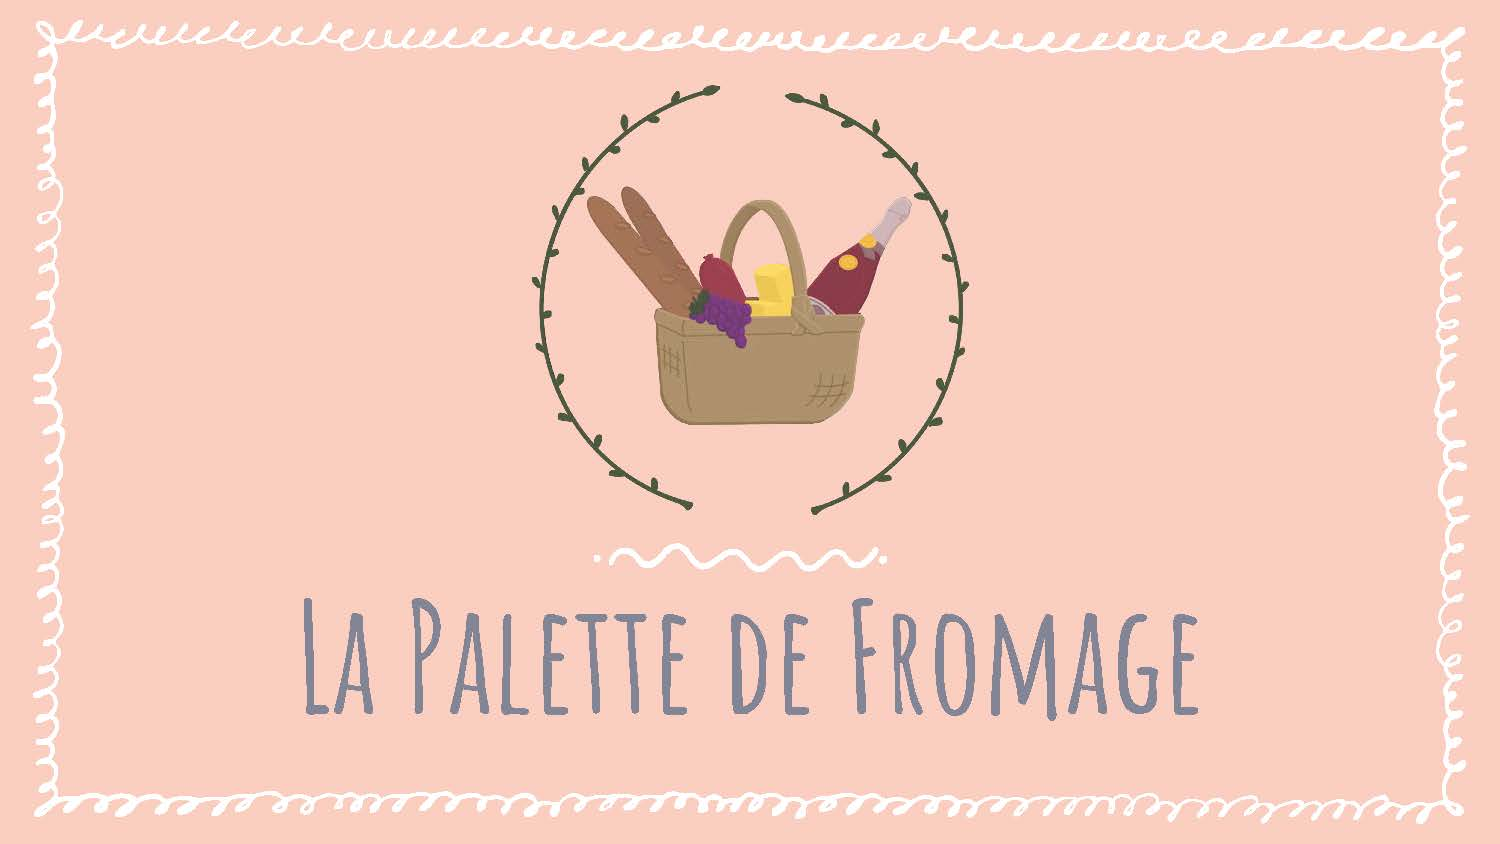 Palette de Fromage Competition Slides_Page_01.jpg